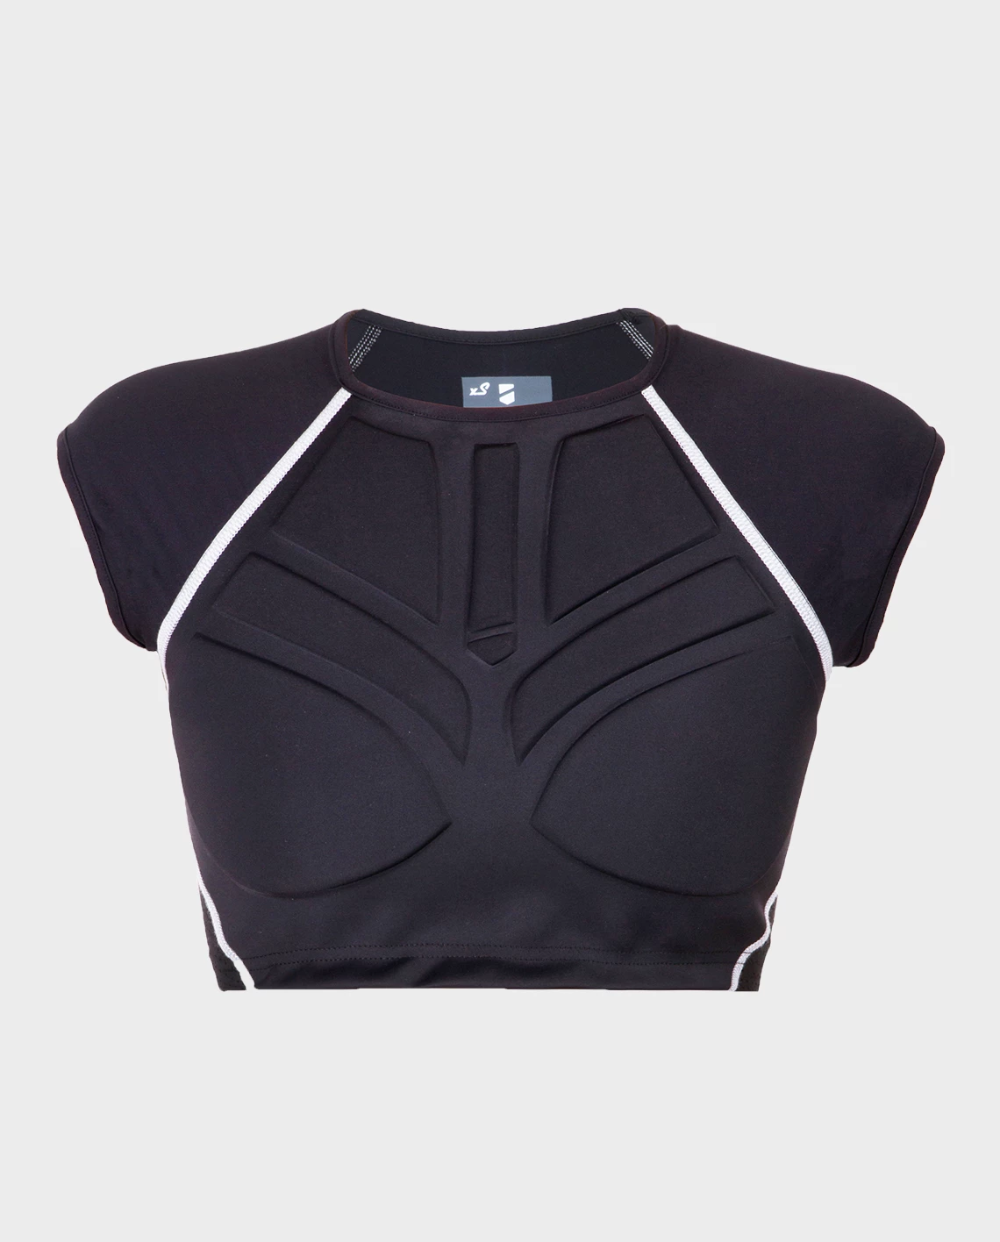 Révèle© soft chest and shoulders protection the Revelia